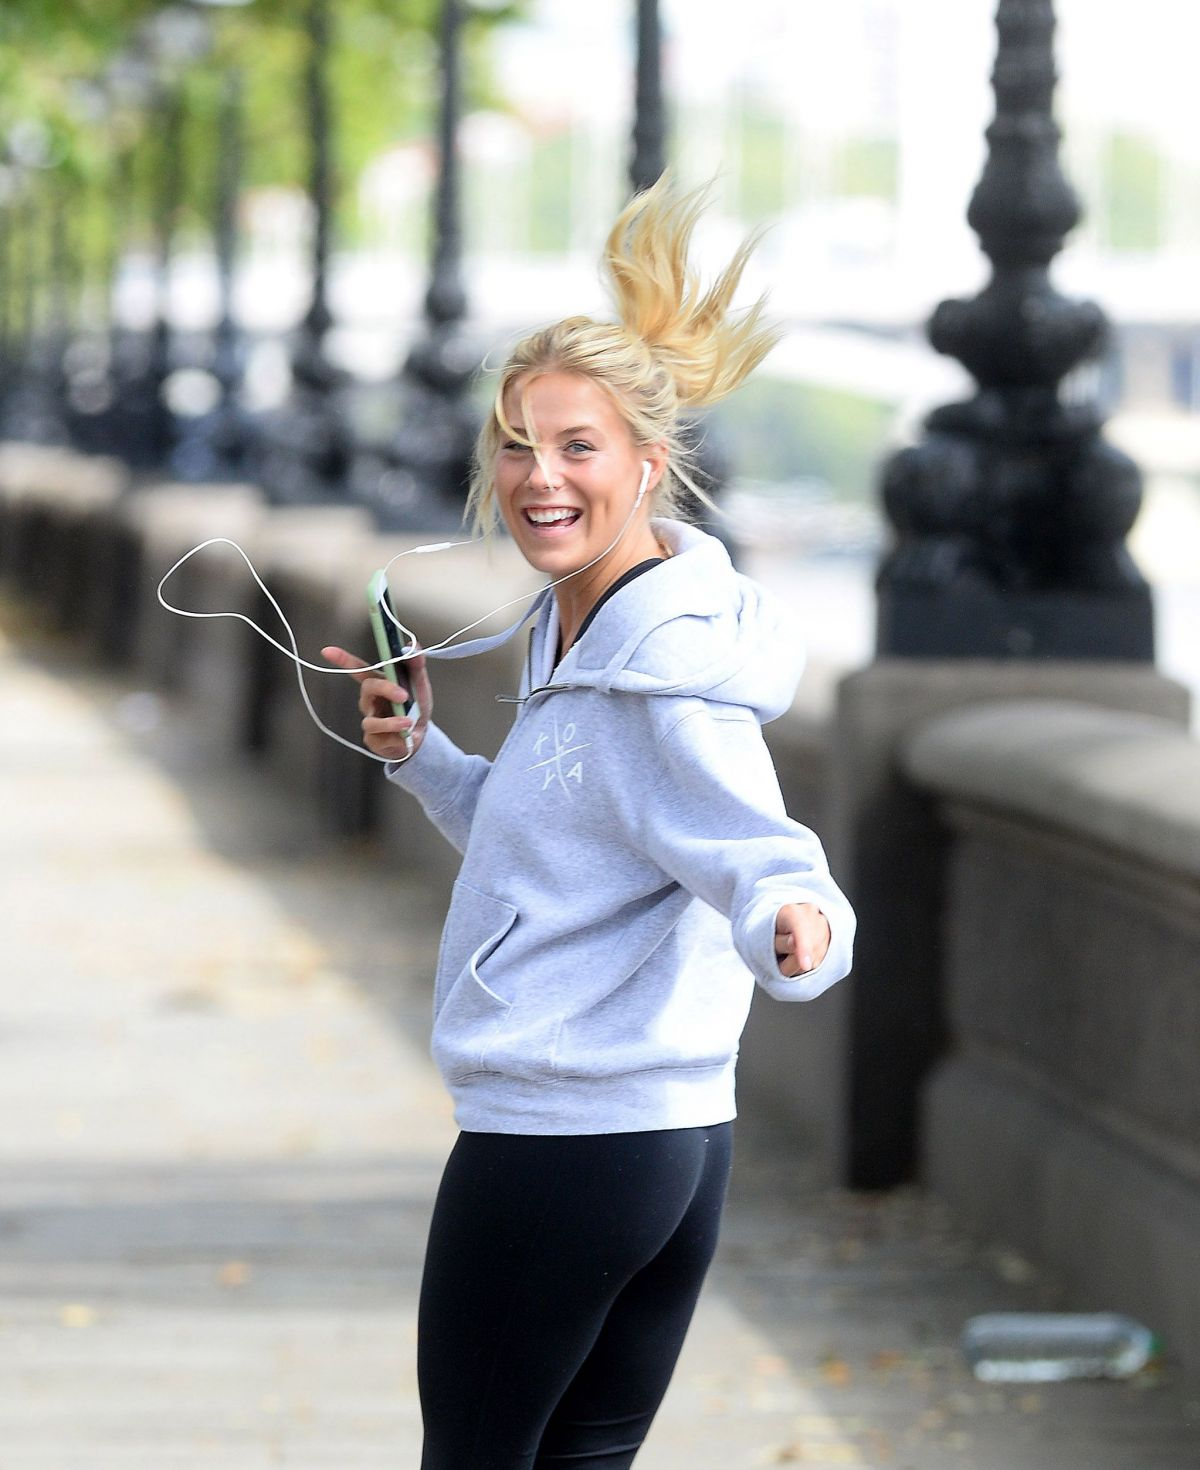 FRANKIE GAFF Out Jogging in London 08/09/2016